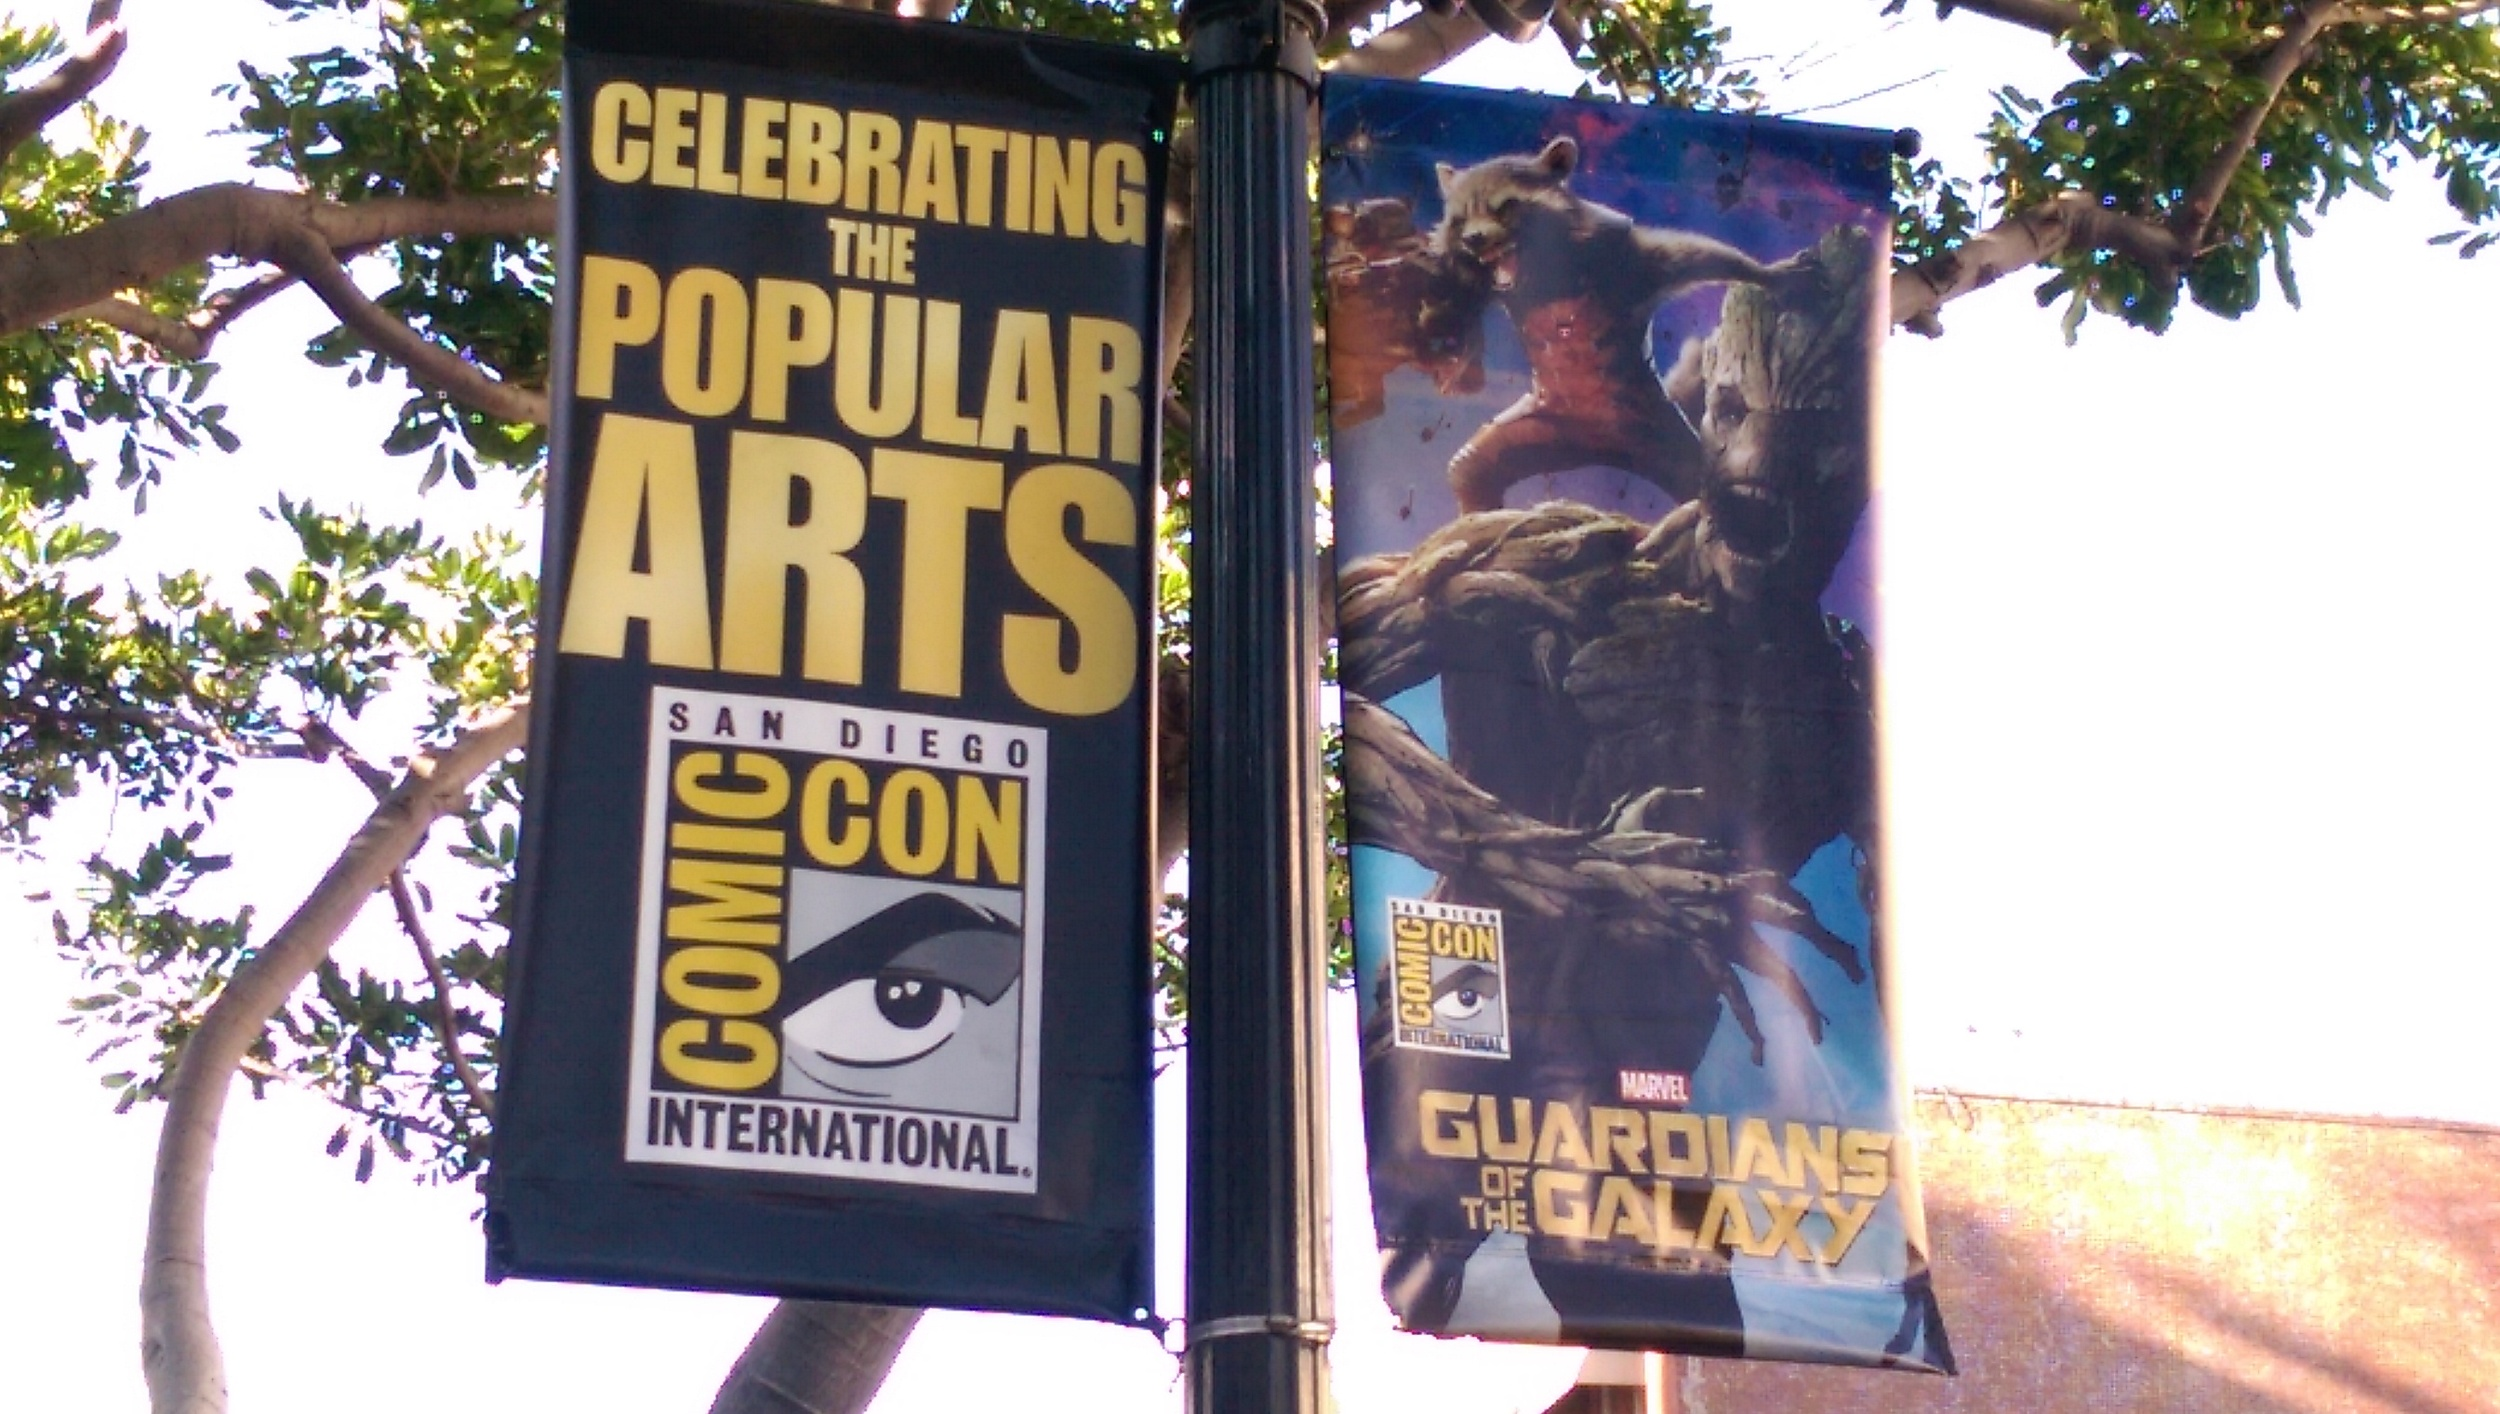 The street banners are my first sign that I'm at Comic-Con